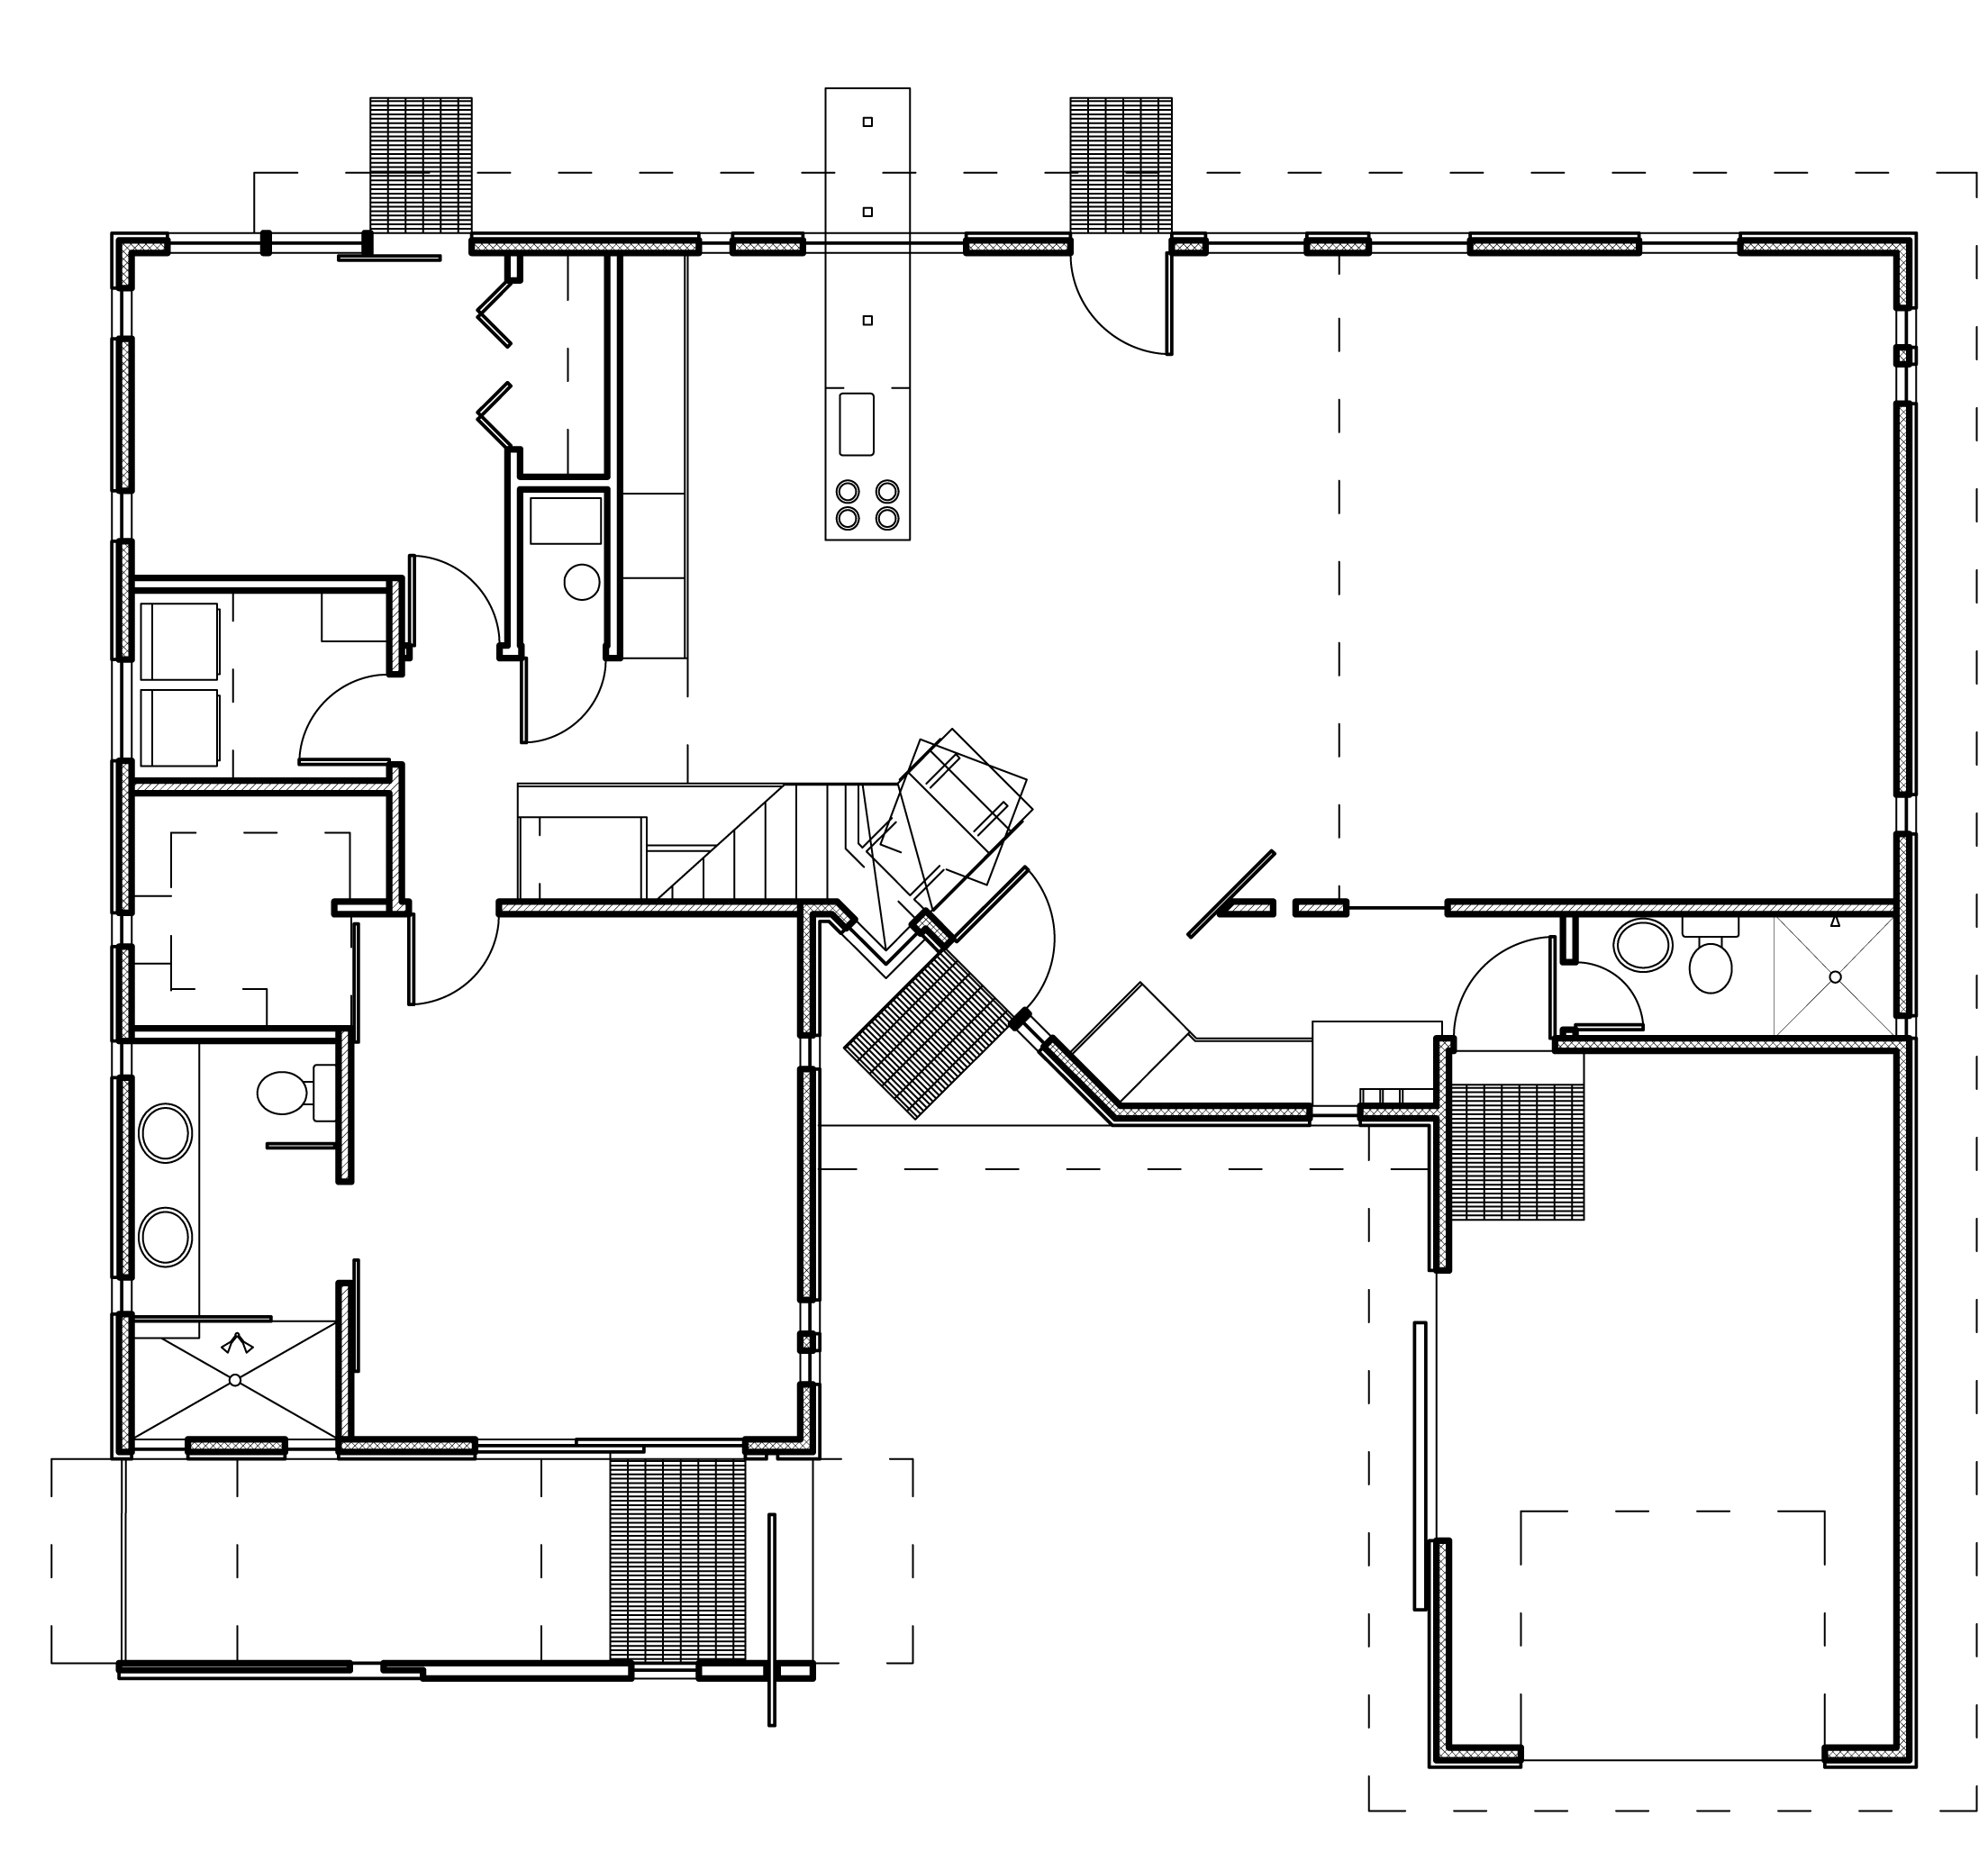 Modern house plans contemporary home designs floor plan 03 for House designs plan